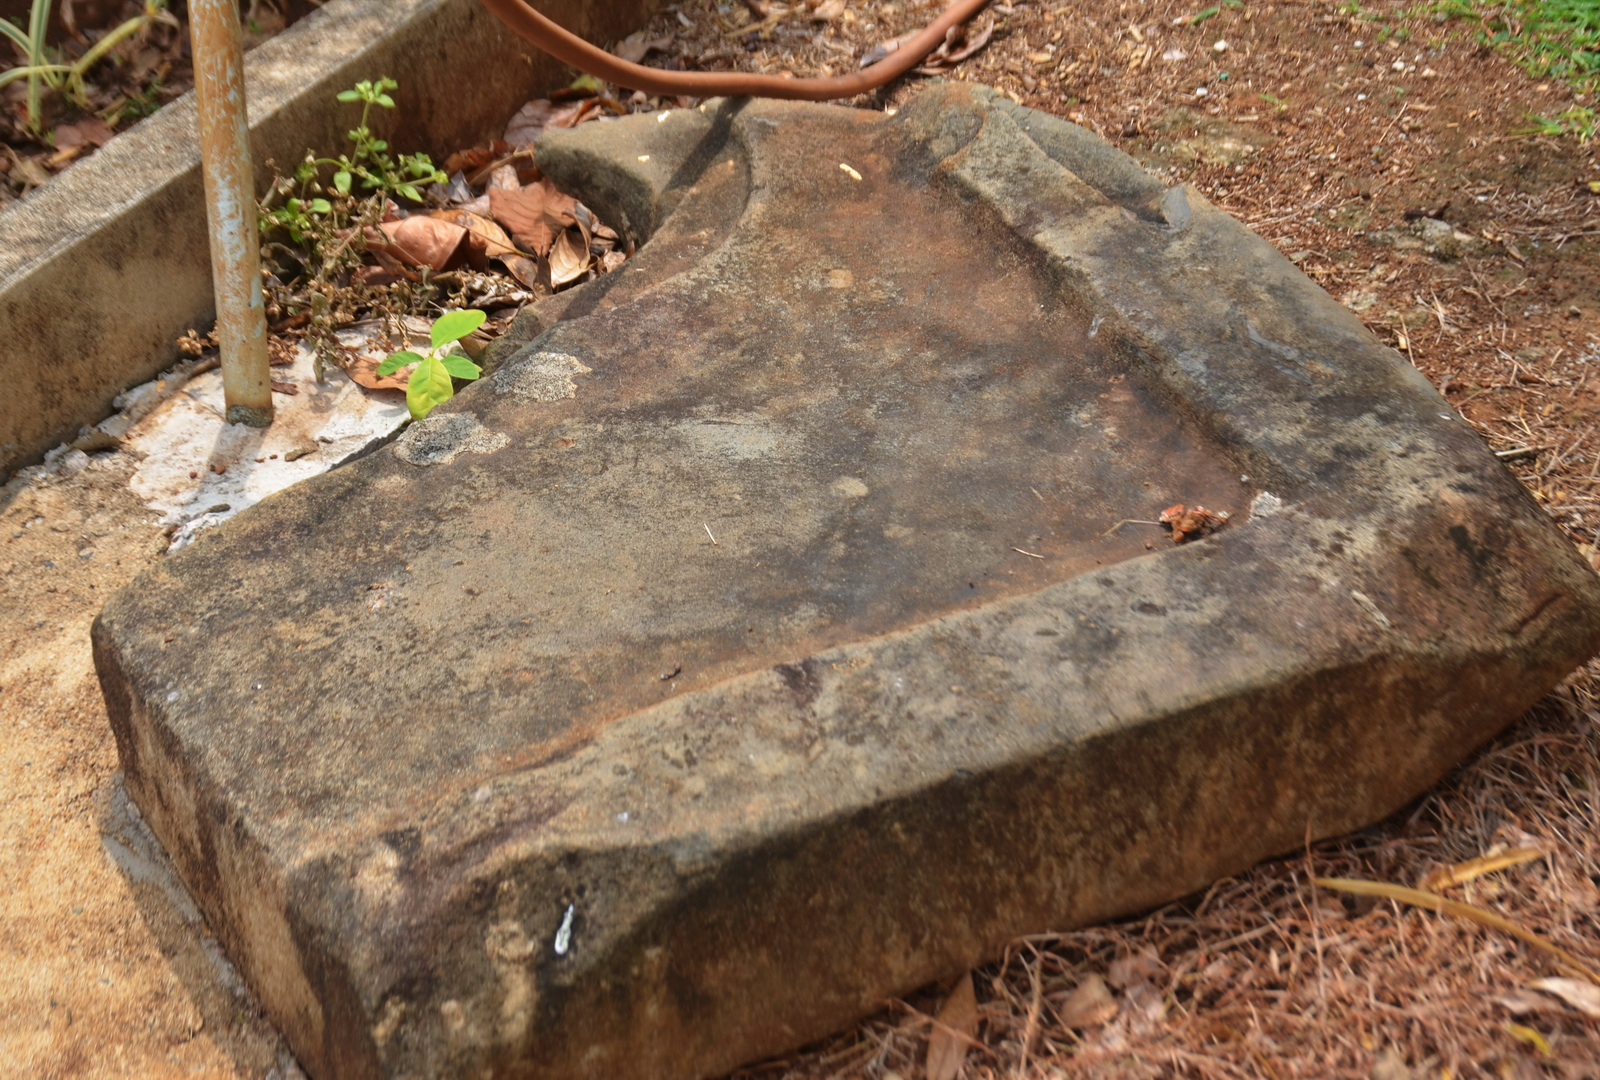 A damaged sandstone plinth or perhaps linga base was also discovered at the site